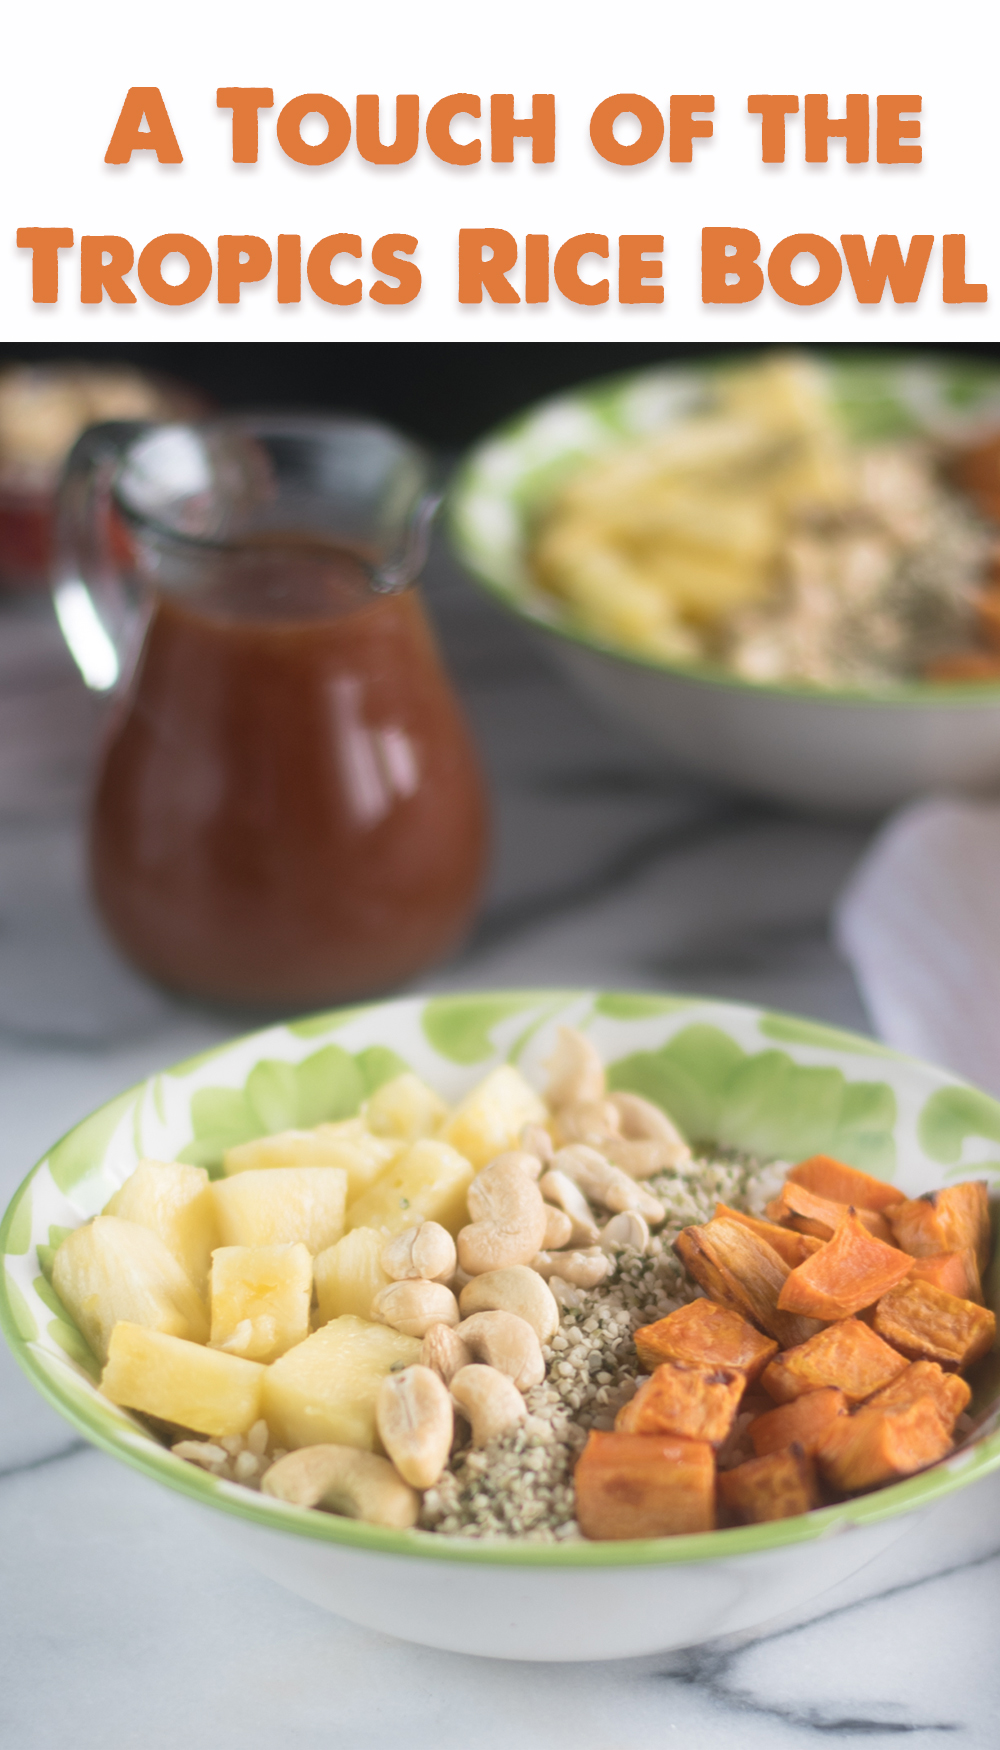 Transport yourself to a tropical island with this A Touch of the Tropics Rice Bowl! You'll definitely feel like you are on a tropical vacation while enjoying this Touch of the Tropics Rice Bowl recipe from The High-Protein Vegan. #vegan #vegetarian #recipes #bowl #rice #sweetpotato #dinner #healthy #healthyrecipes